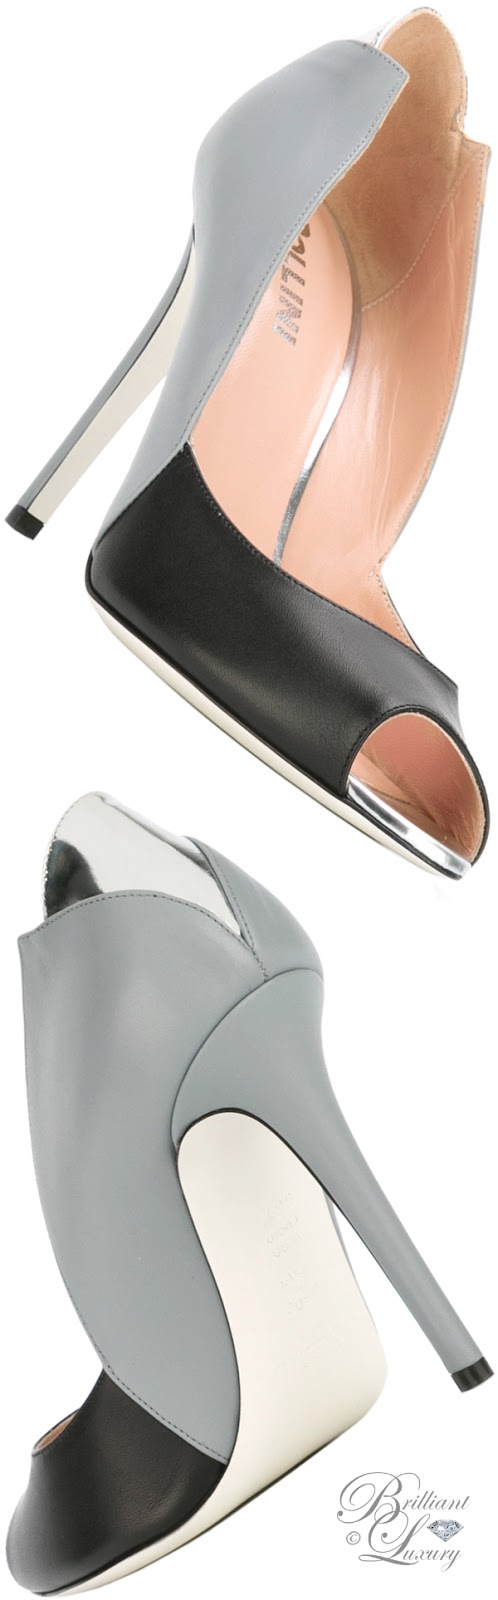 Brilliant Luxury ♦ Pollini Contrast Sandals